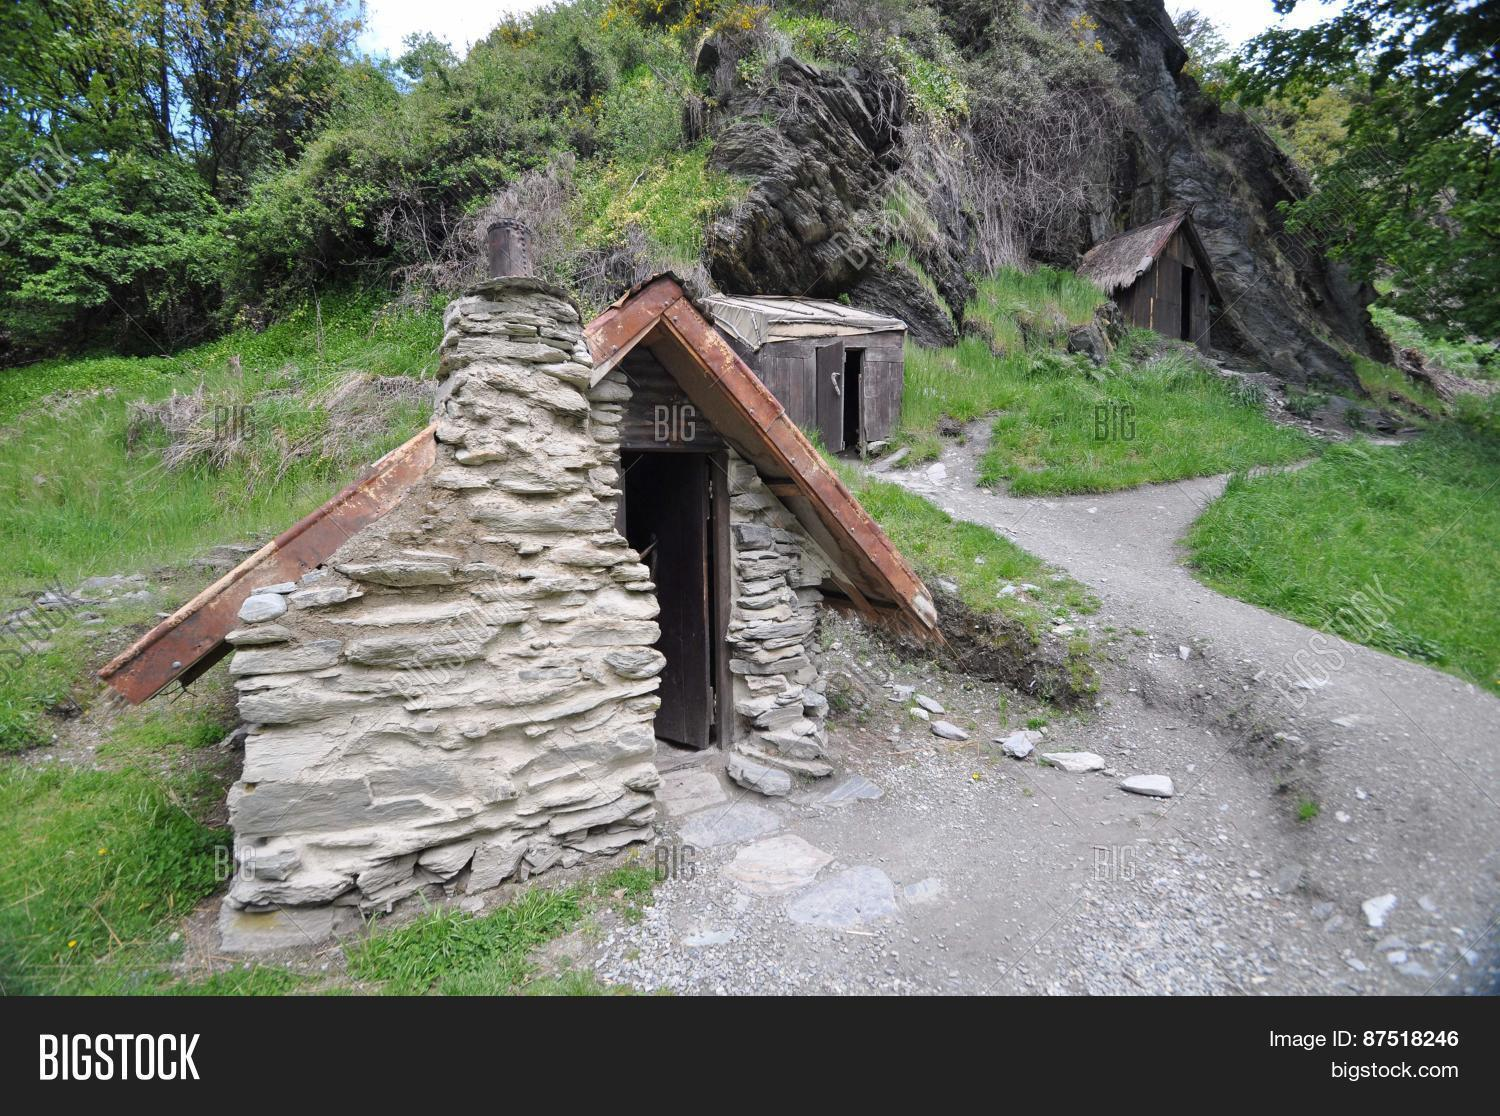 Arrowtown near Queenstown Otago New Zealand is the best example of a goldrush era miners settlement These Chinese gold diggers arrived during the 1860's gold rush. They made and lived in these primitive huts. ** Note: Soft Focus at 100%, best at smaller